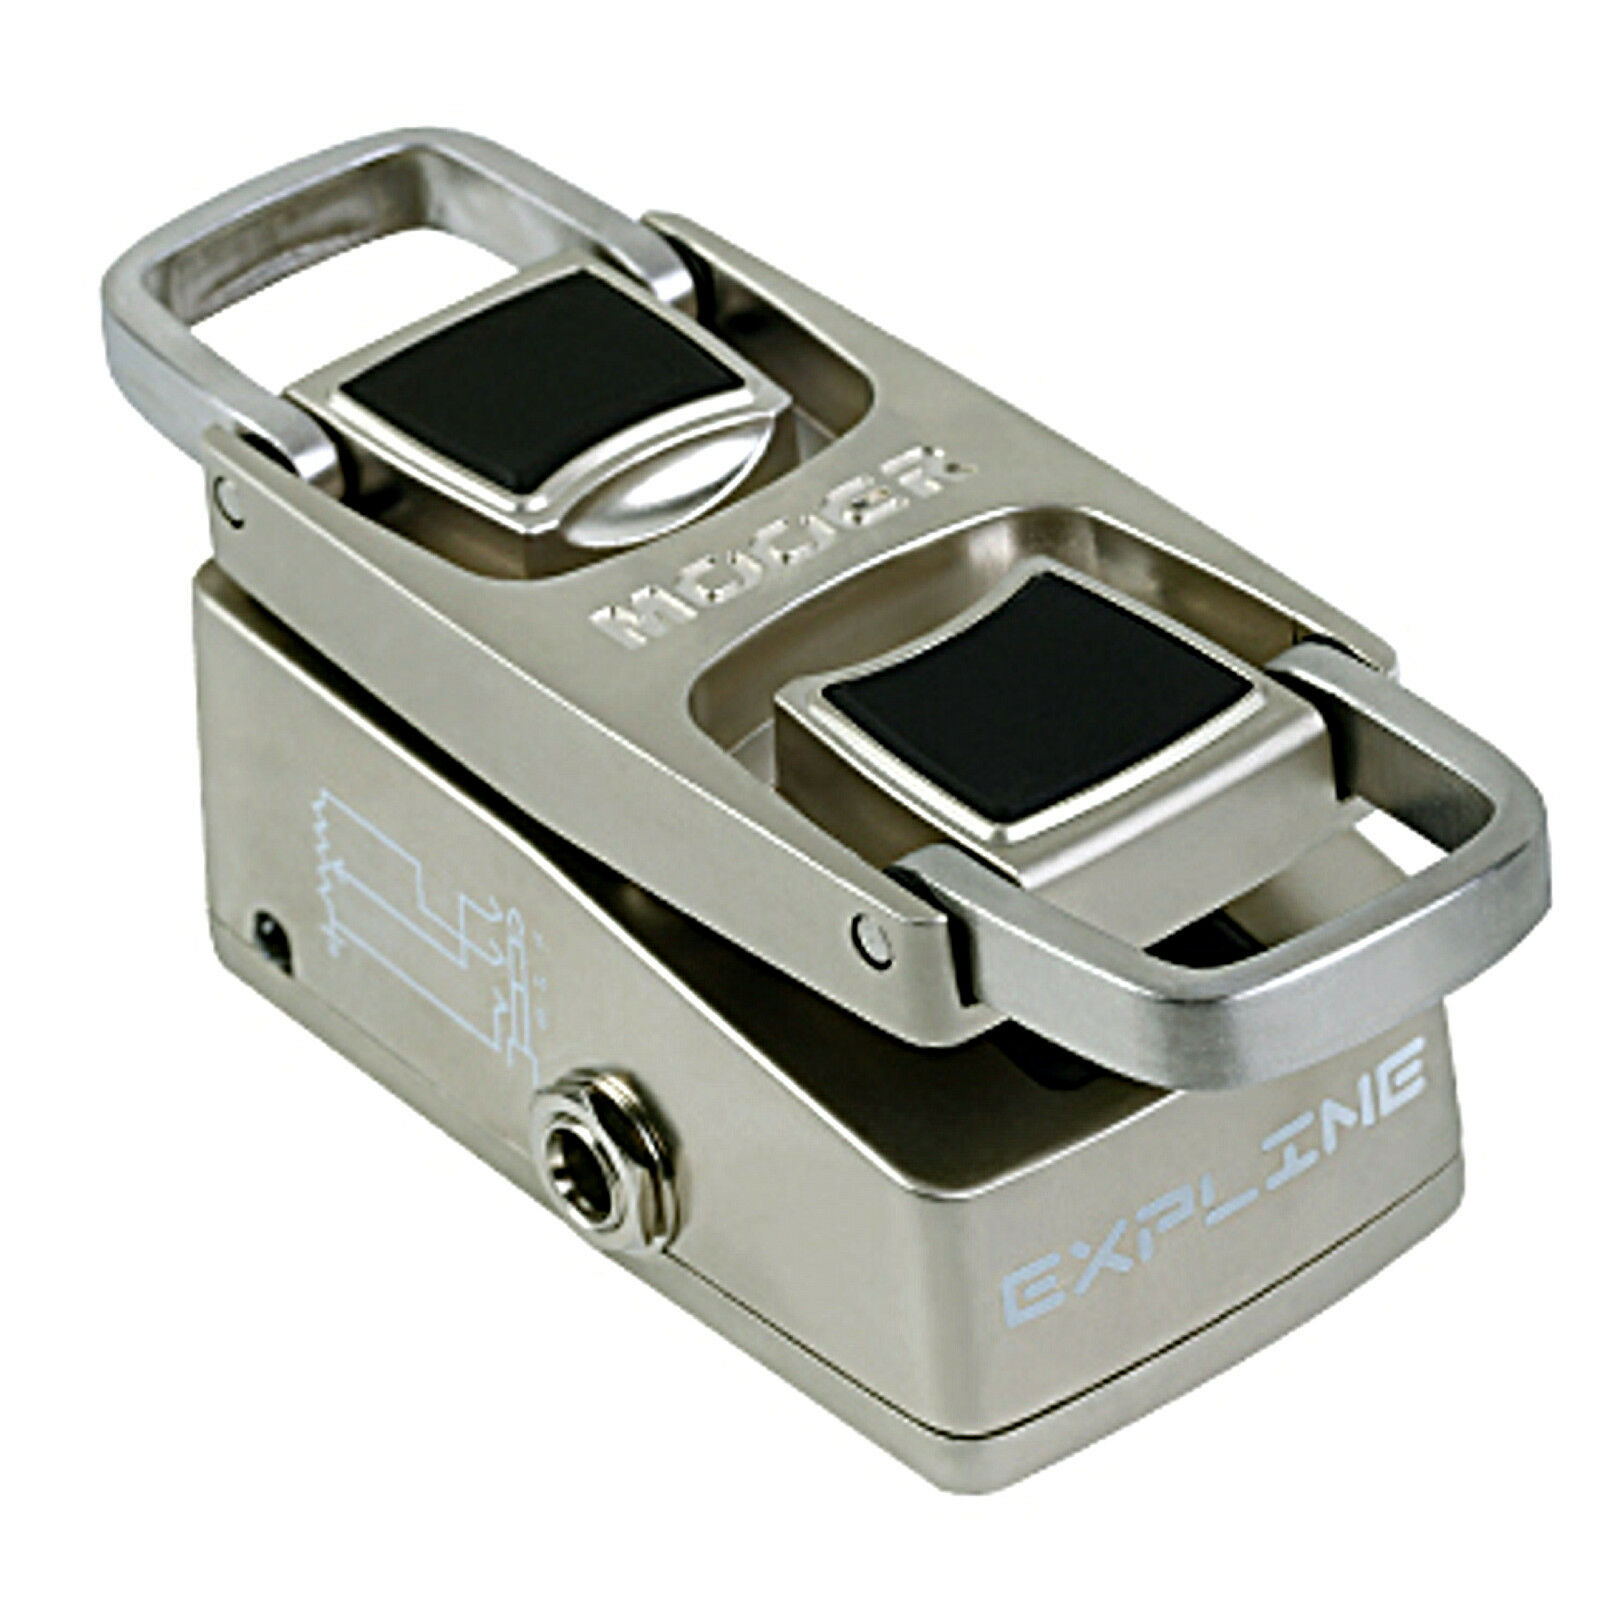 Mooer Expline Expression Micro Größed Guitar Effects Pedal